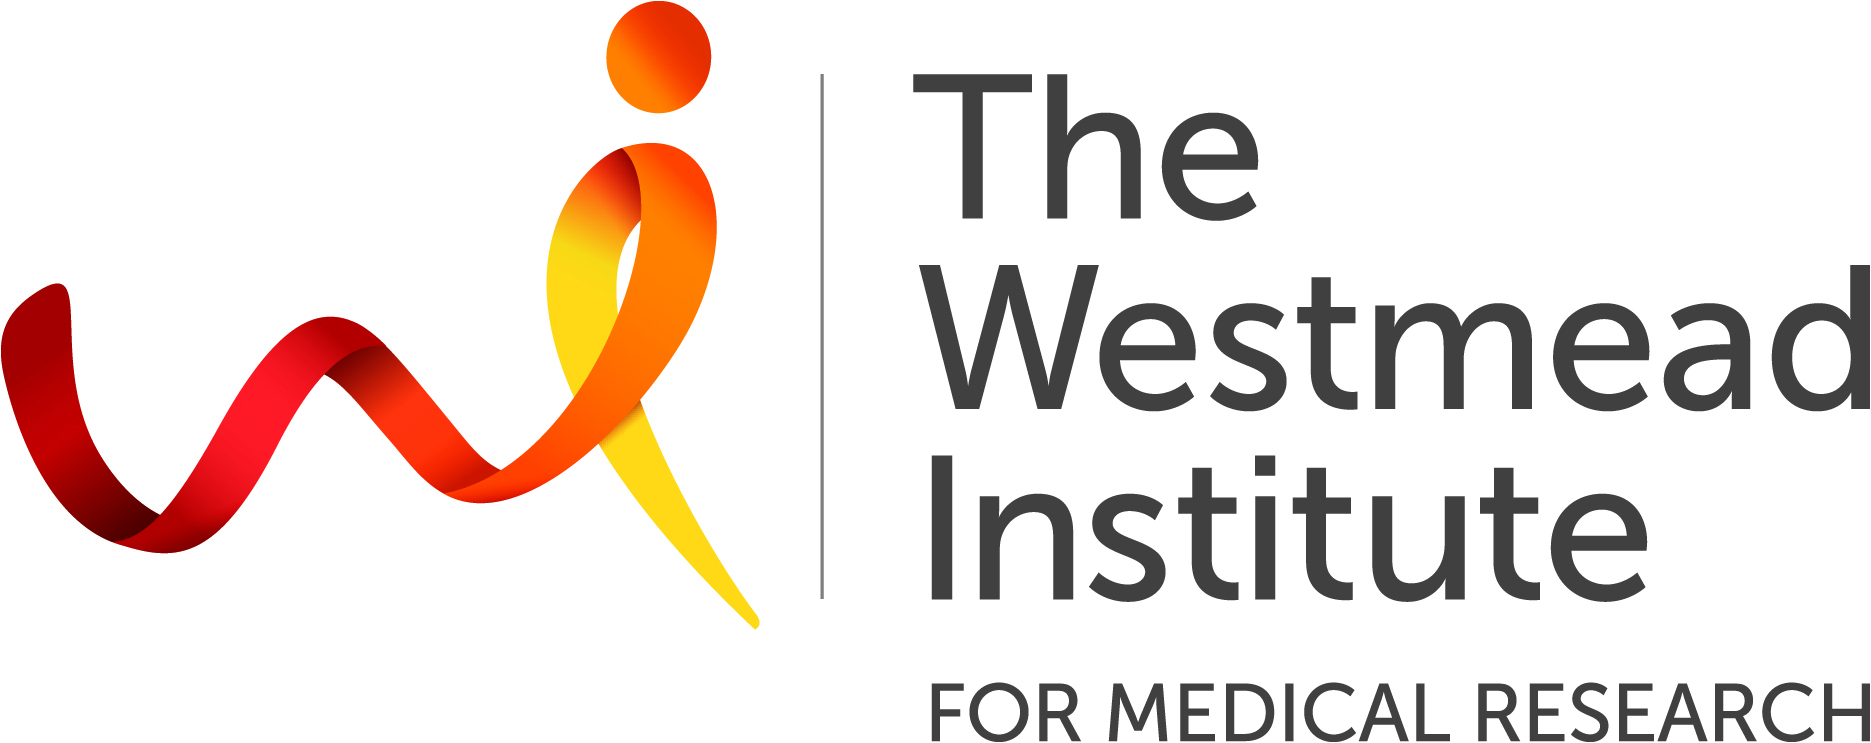 The Westmead Institute for Medical Research